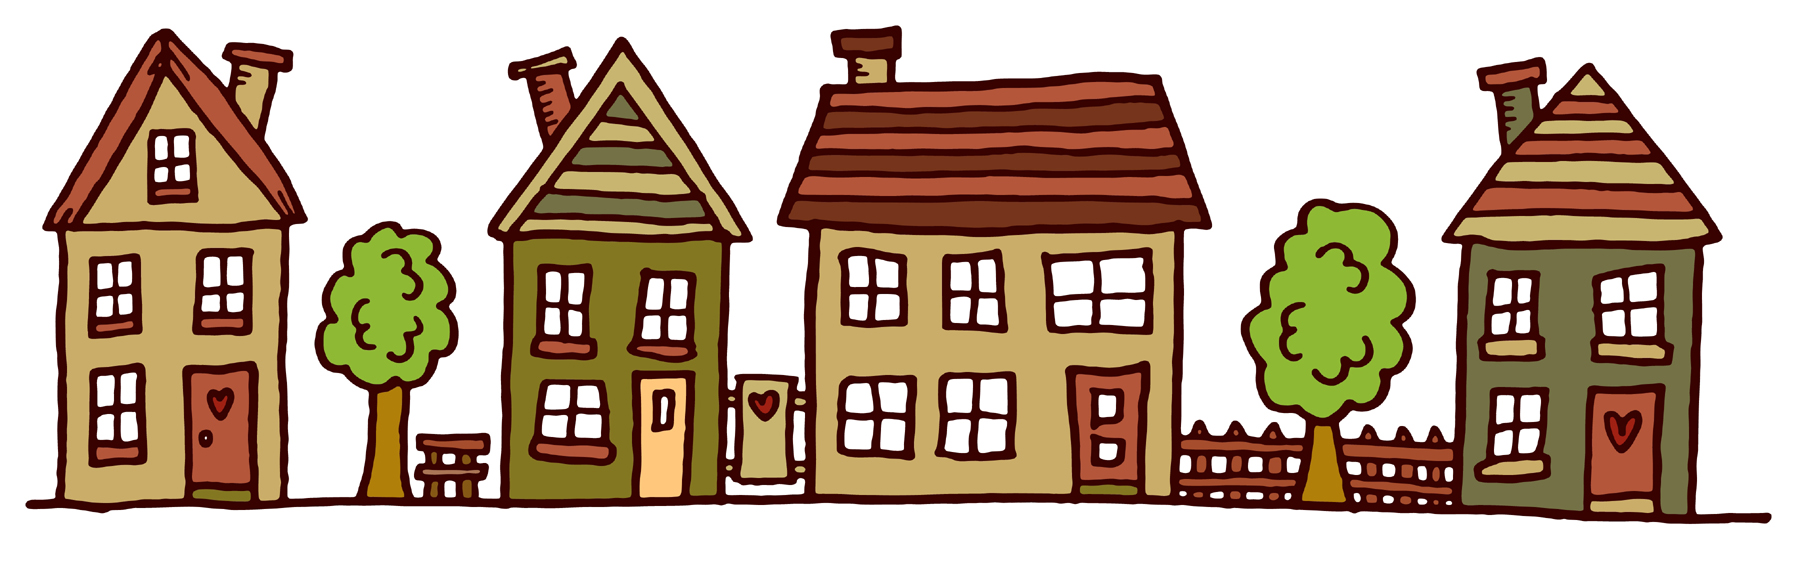 Row House Clipart.